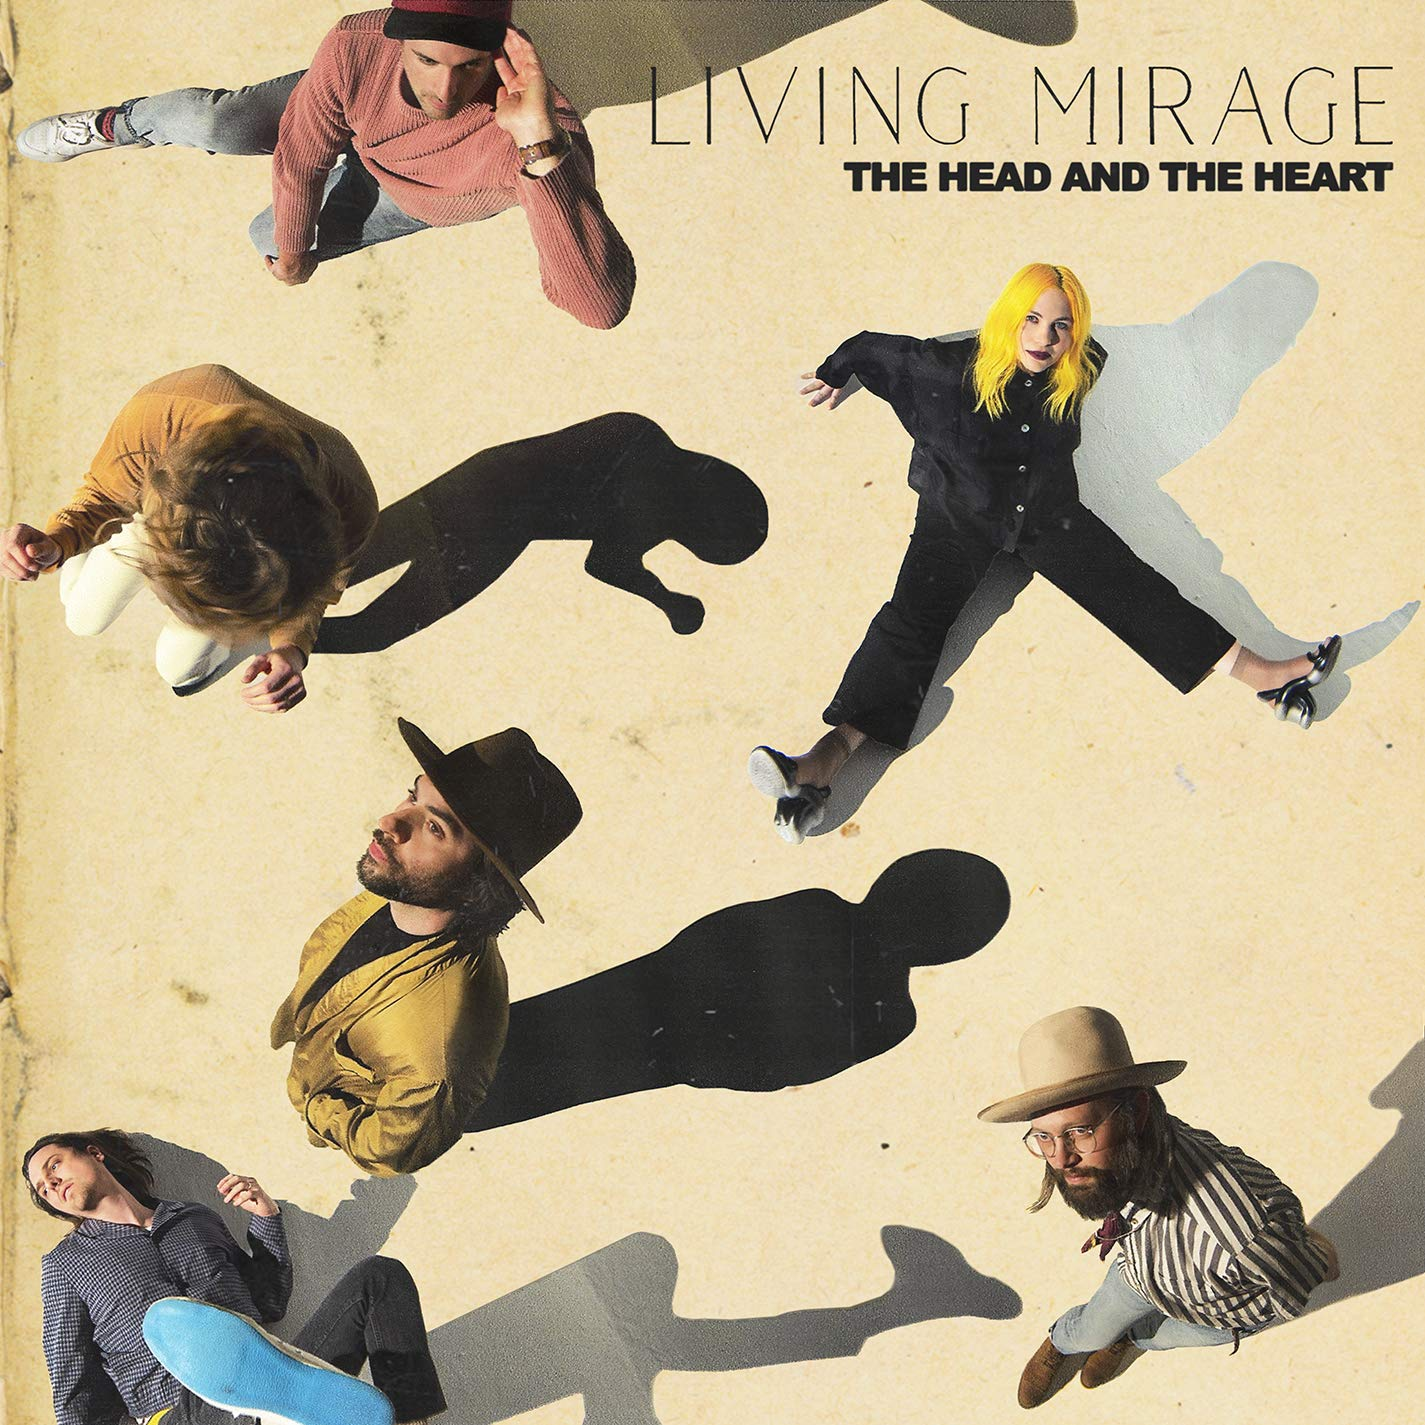 The Head And The Heart - Living Mirage [LP] Colored Vinyl Green - Urban Vinyl | Records, Headphones, and more.